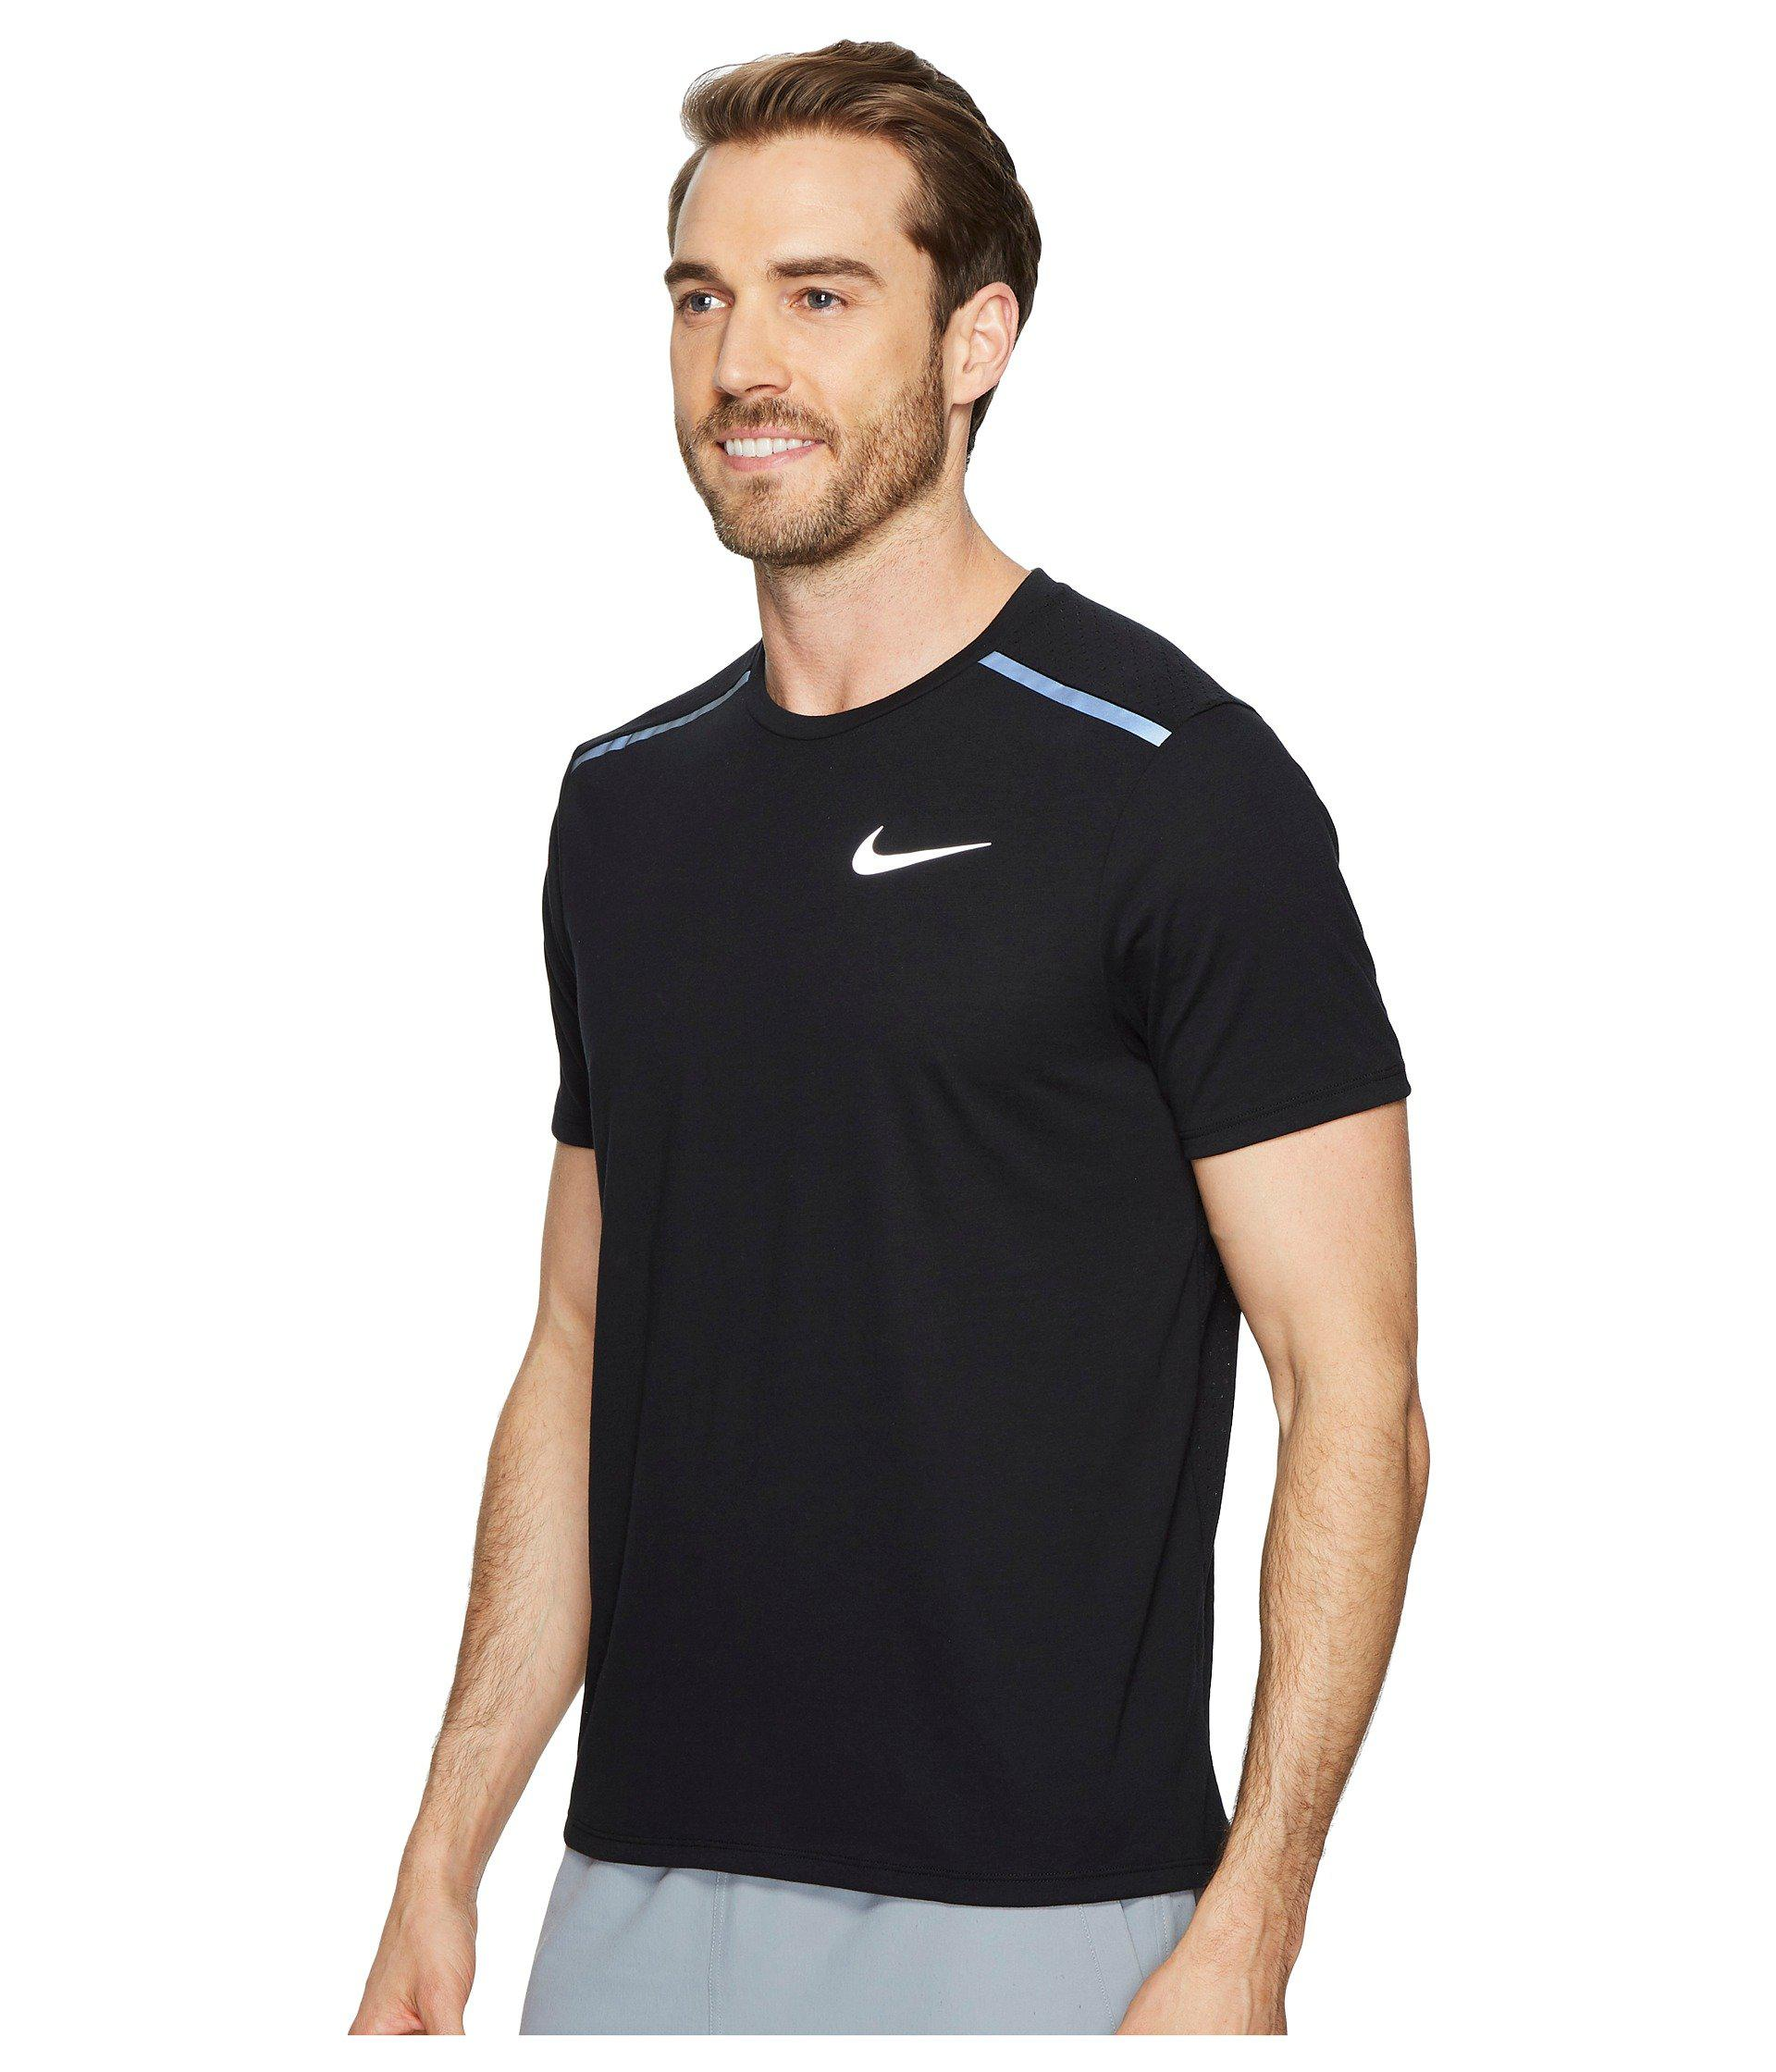 ddb4c9ed17 Lyst - Nike Tailwind Short-sleeve Running Top in Black for Men - Save 27%